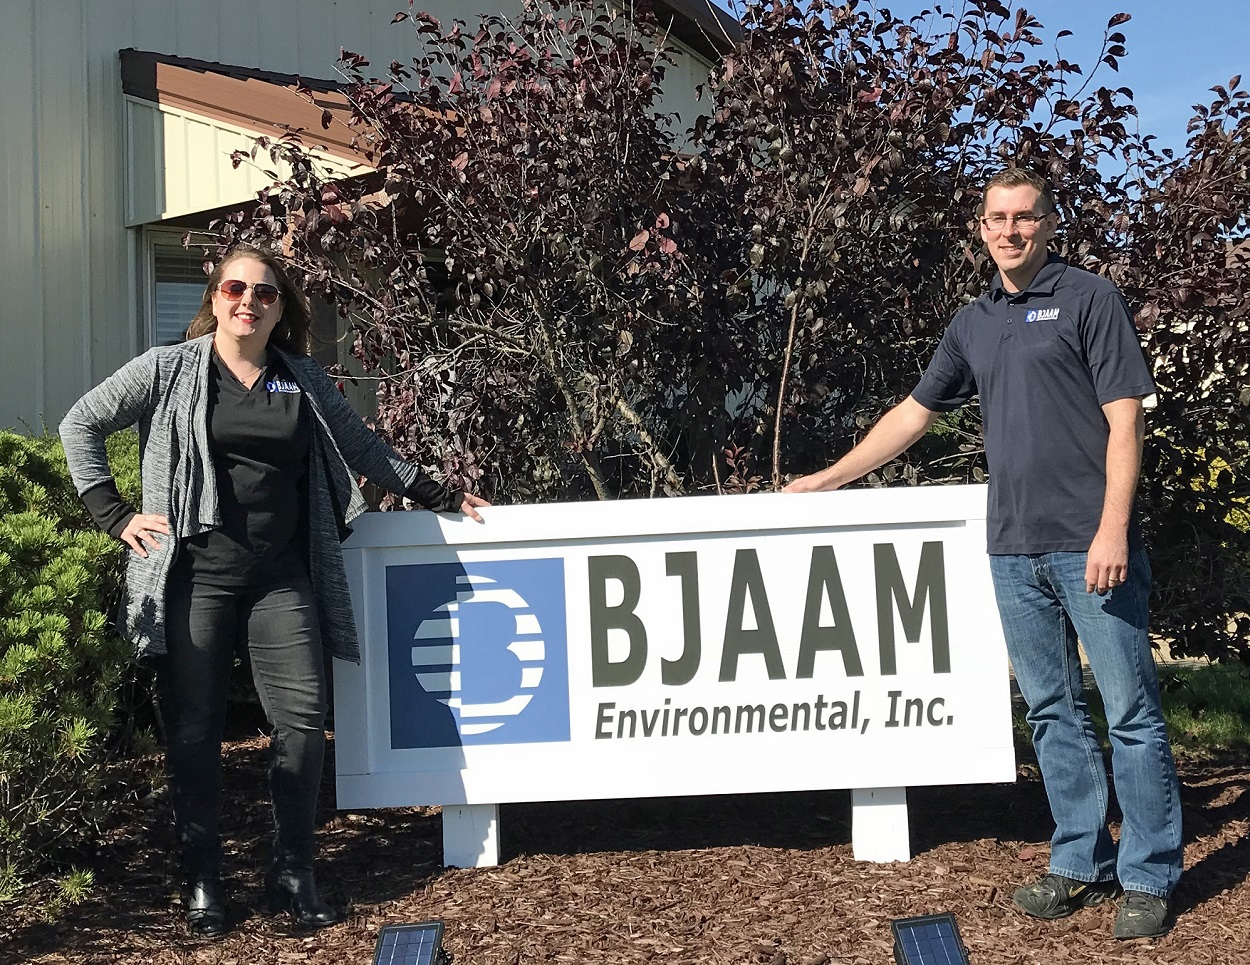 Lauren Goff and Clifton Wheeler standing on either side the the BJAAM sign in front of the corporate office building